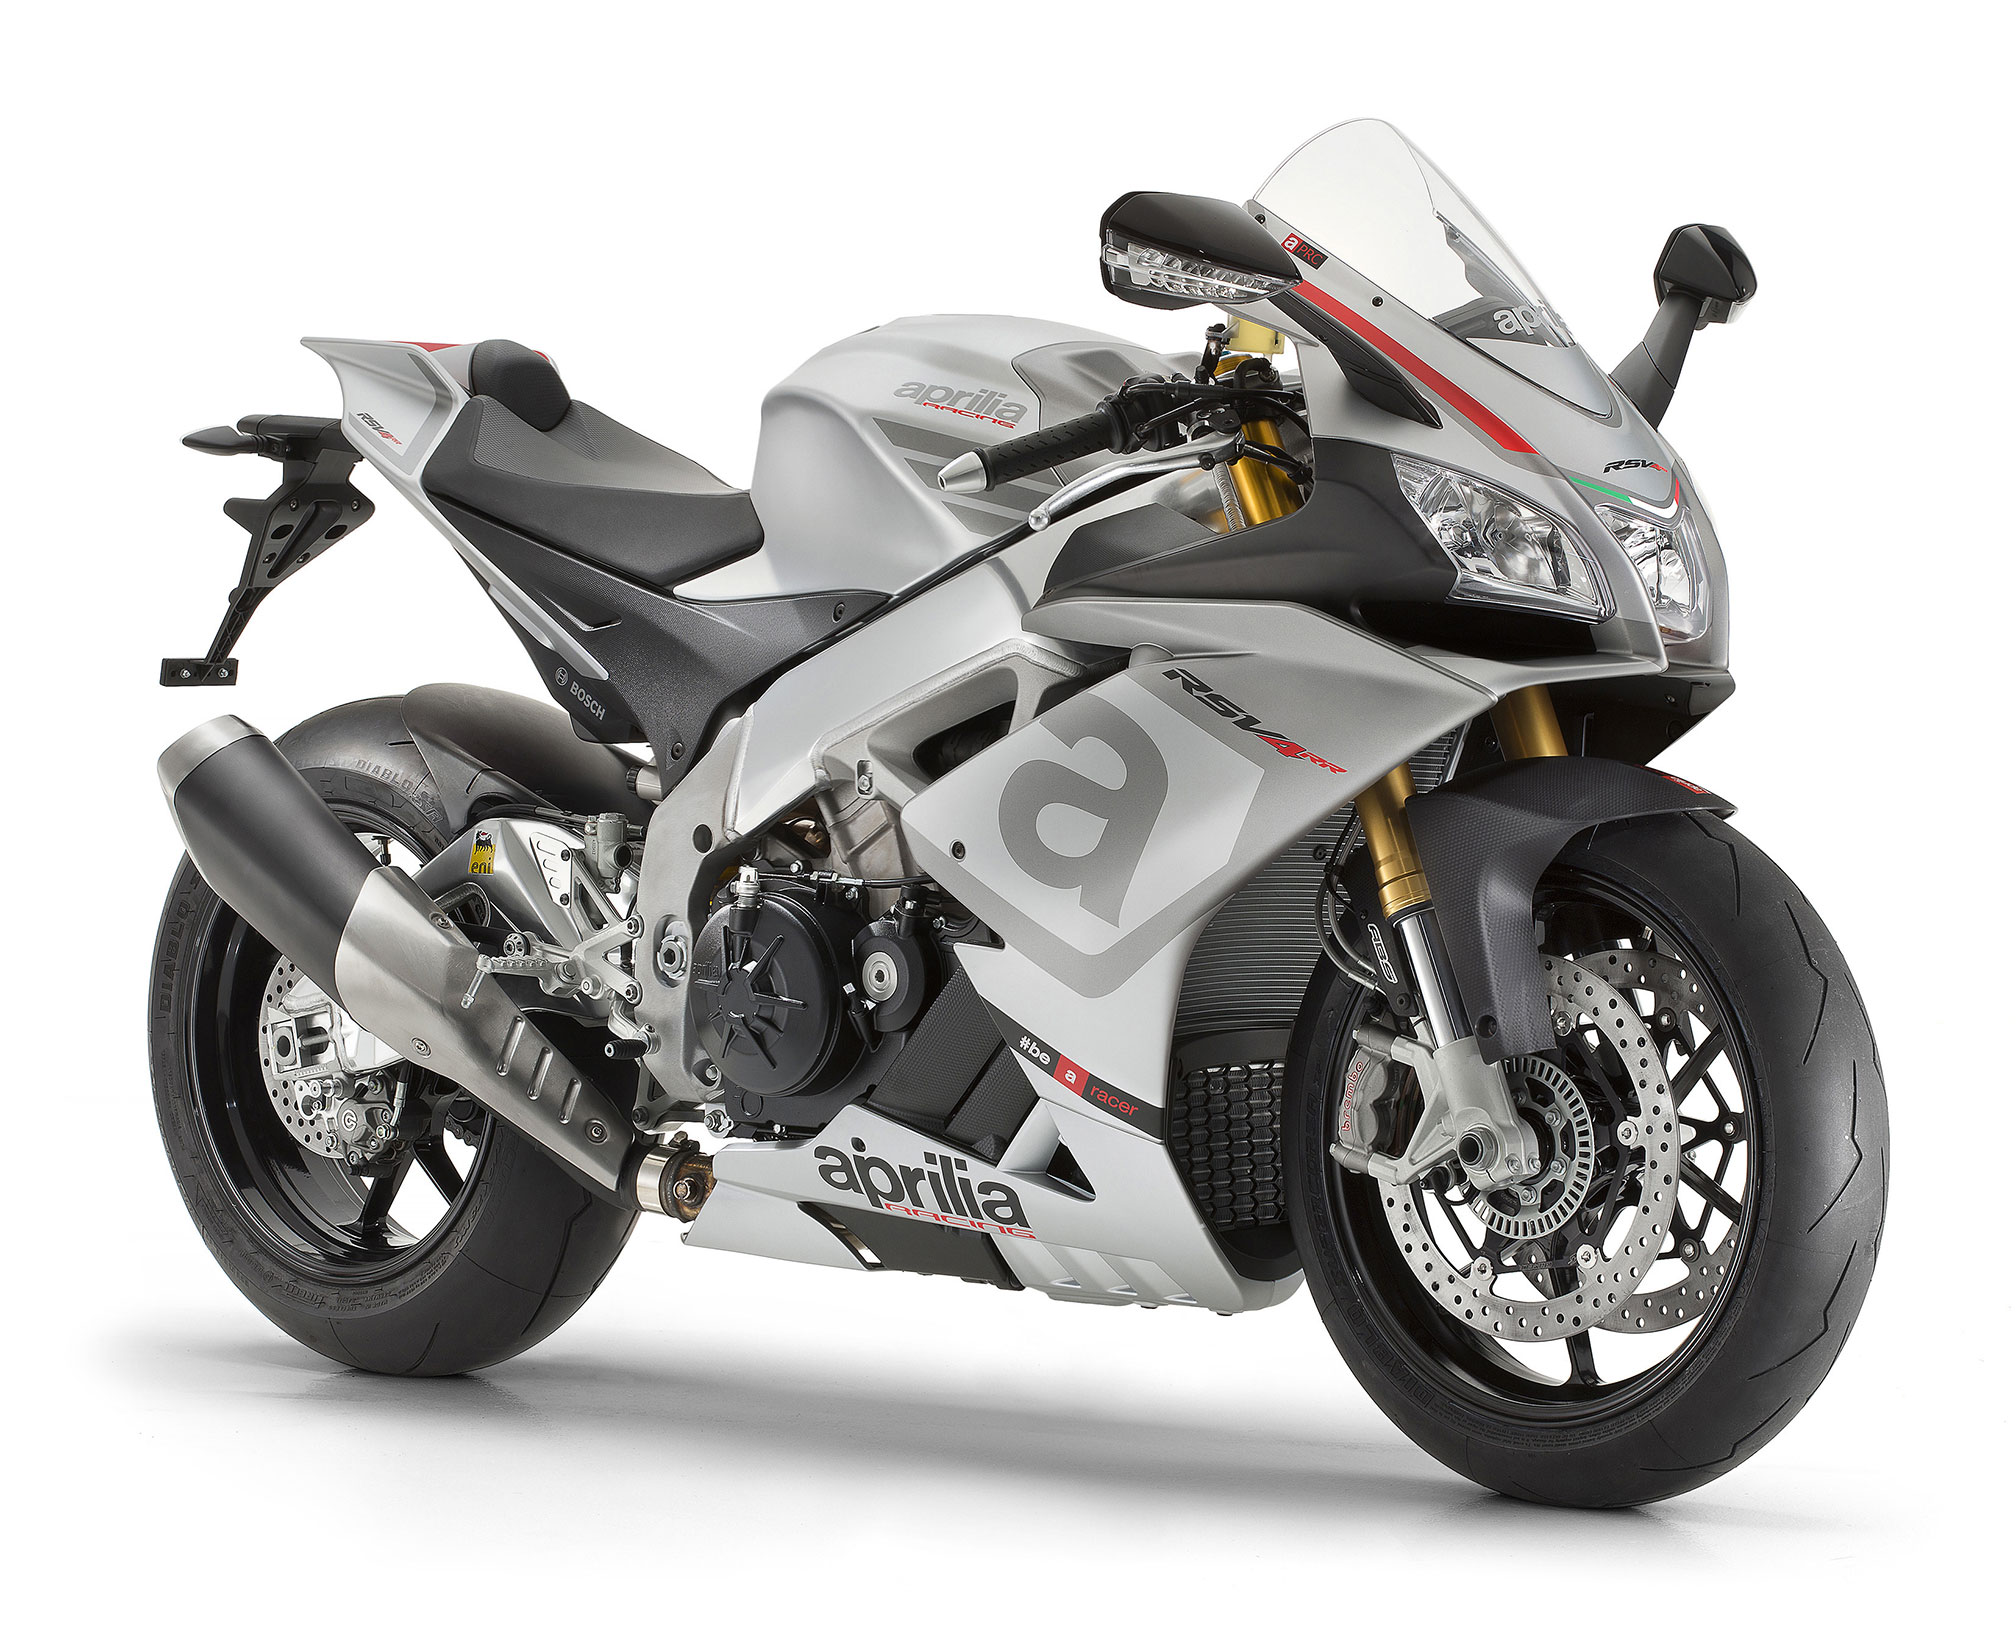 2016 Aprilia Rsv4 Rr Review Tail Light Wiring Diagram Sportbike Forums Sportbikes Motorcycle